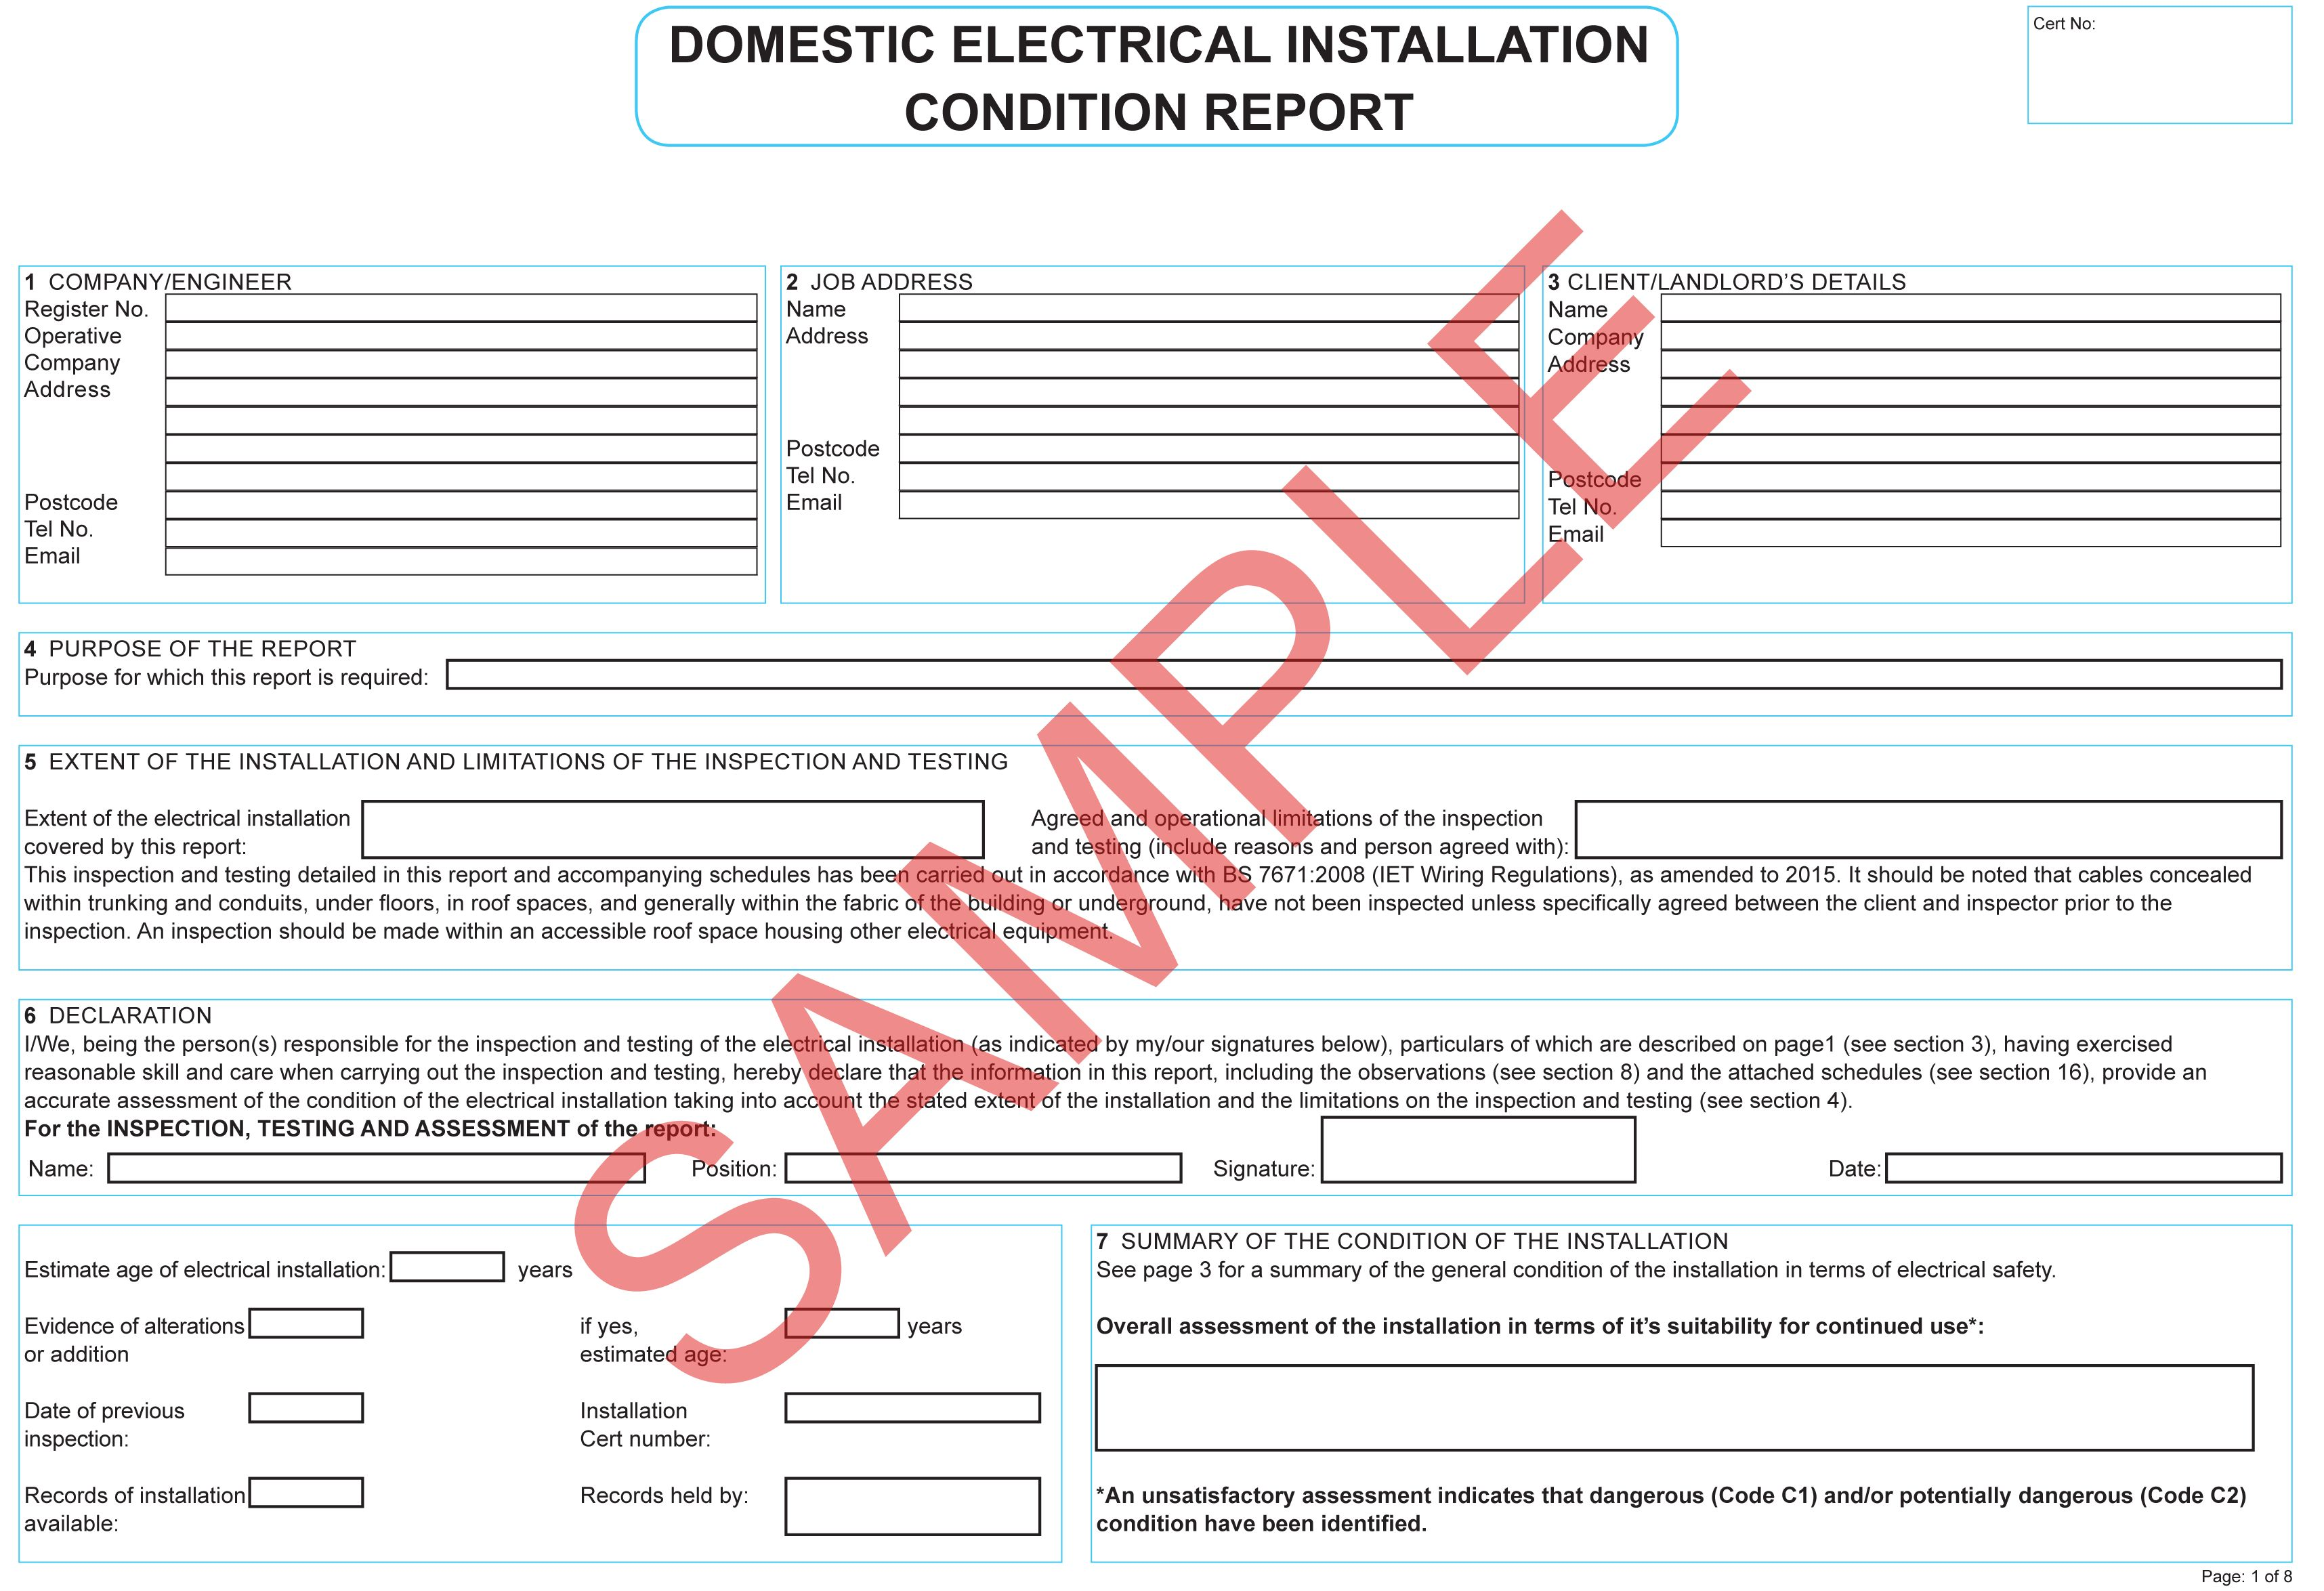 Certificates Everycert For Electrical Minor Works With Minor Electrical Installation Wor In 2020 Certificate Templates Business Plan Template Electrical Installation